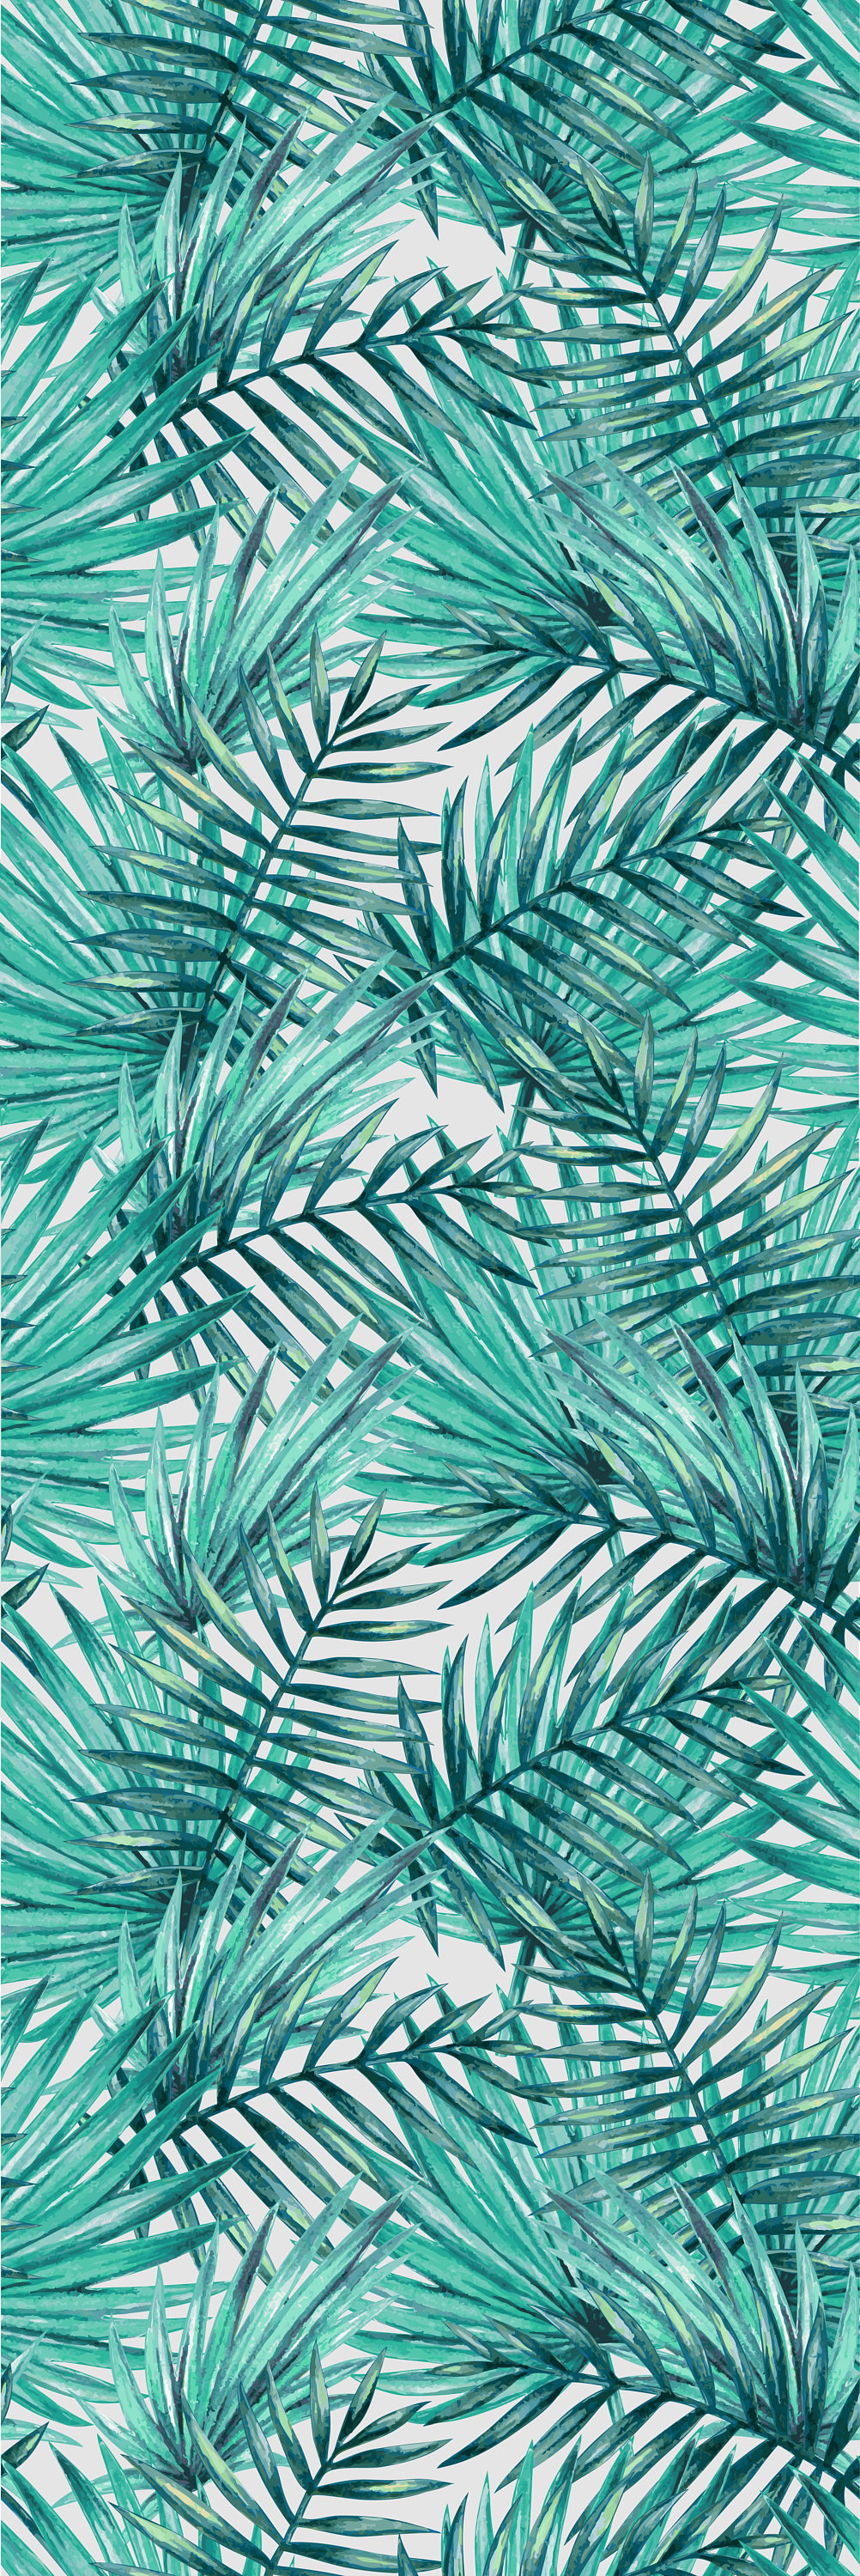 Green Tropical Leaves Wallpapers Wallpaper Cave Download this green little refreshing tropical palm leaf golden border, palm leaf, botany, plant border png clipart image with transparent background or psd file for free. green tropical leaves wallpapers